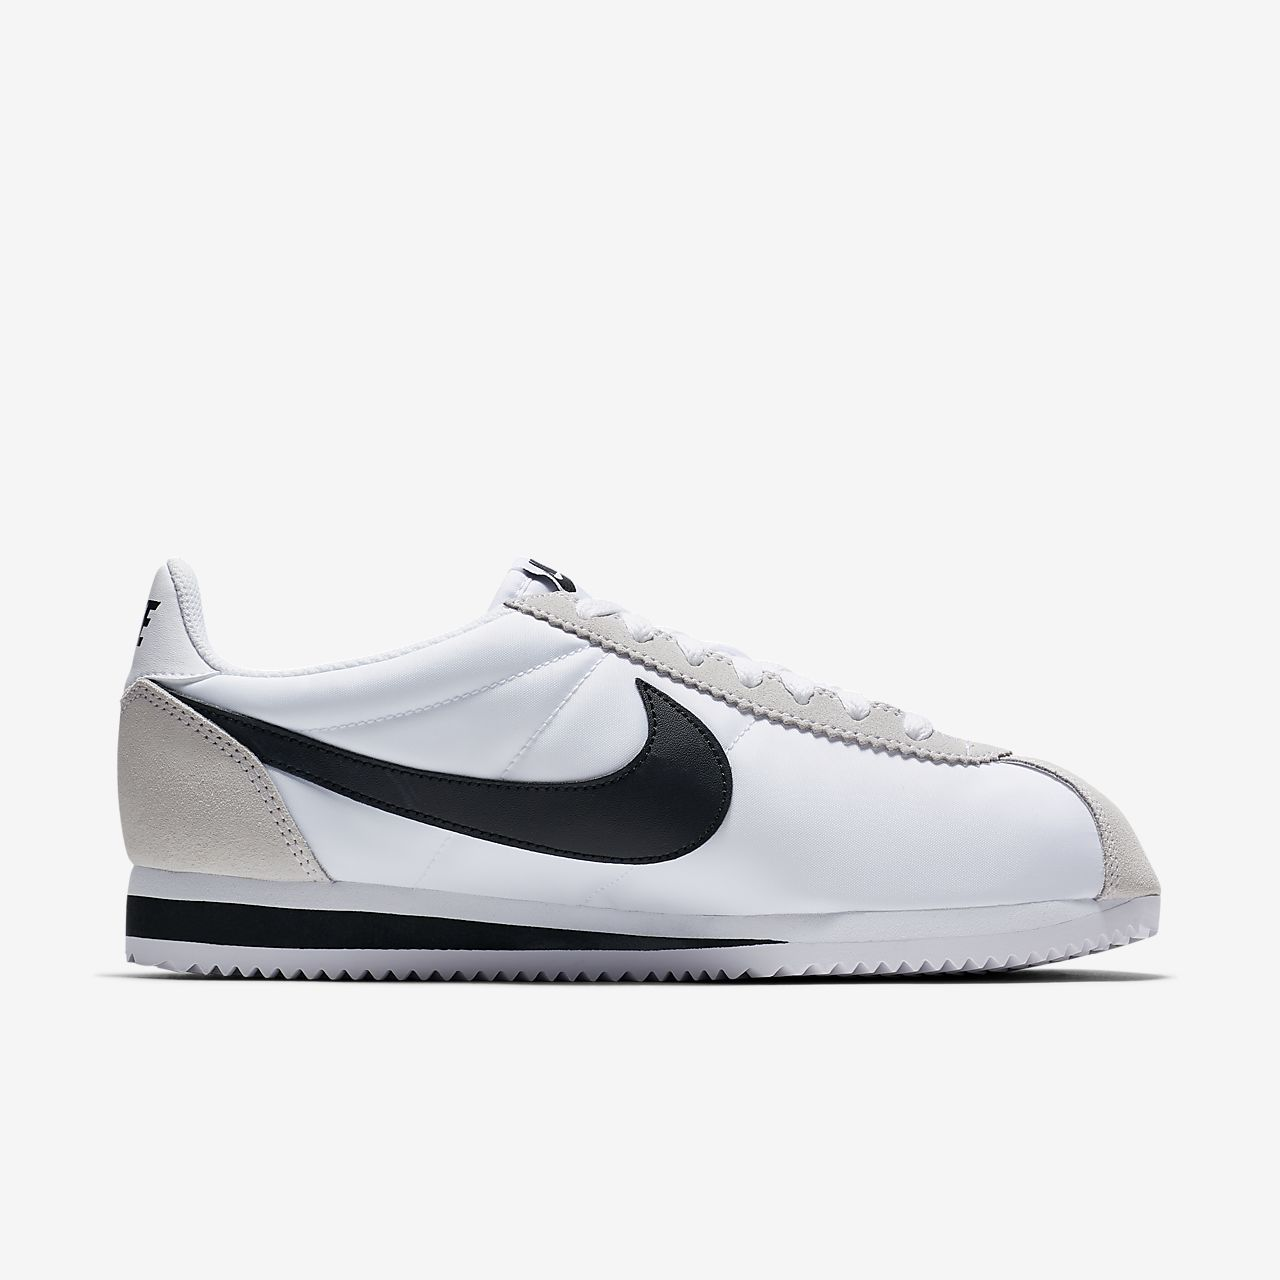 detailed look 1b5eb a283f ... leather eef68 1f40c  netherlands nike classic cortez nylon unisex shoe  7a2b8 49535